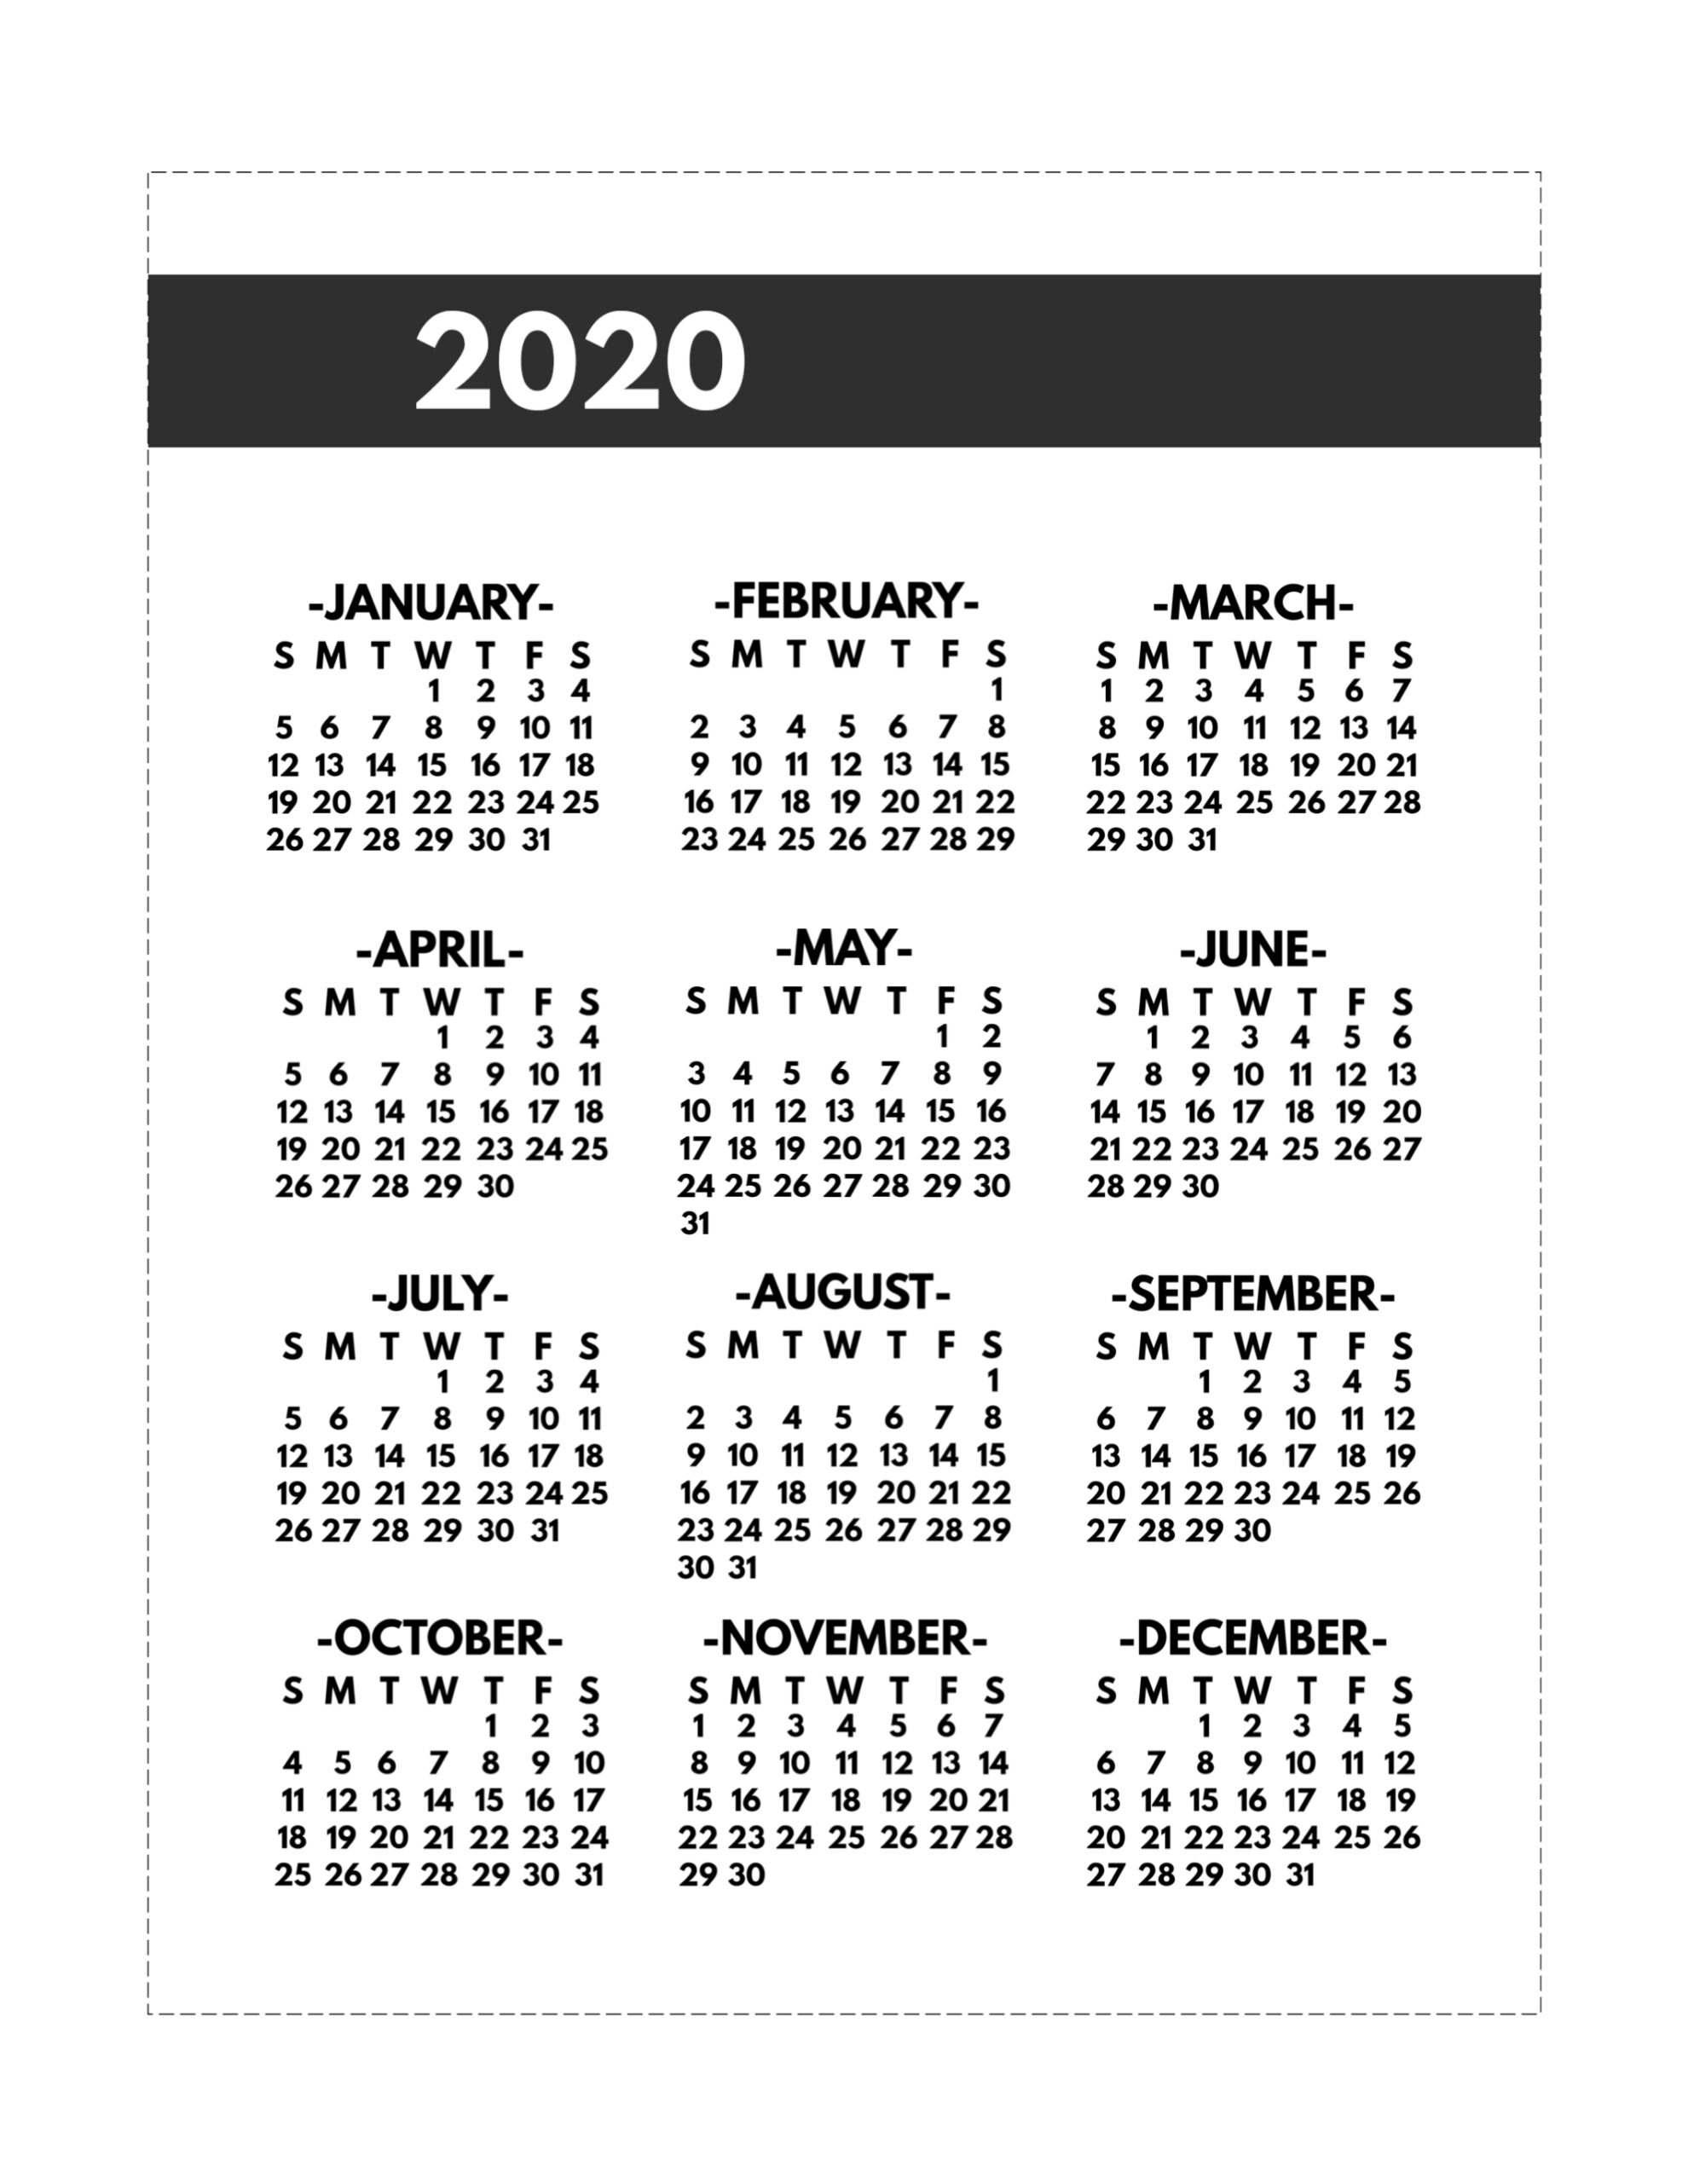 2020 Printable One Page Year At A Glance Calendar - Paper within Printable 2020 Calendar Year At A Glance